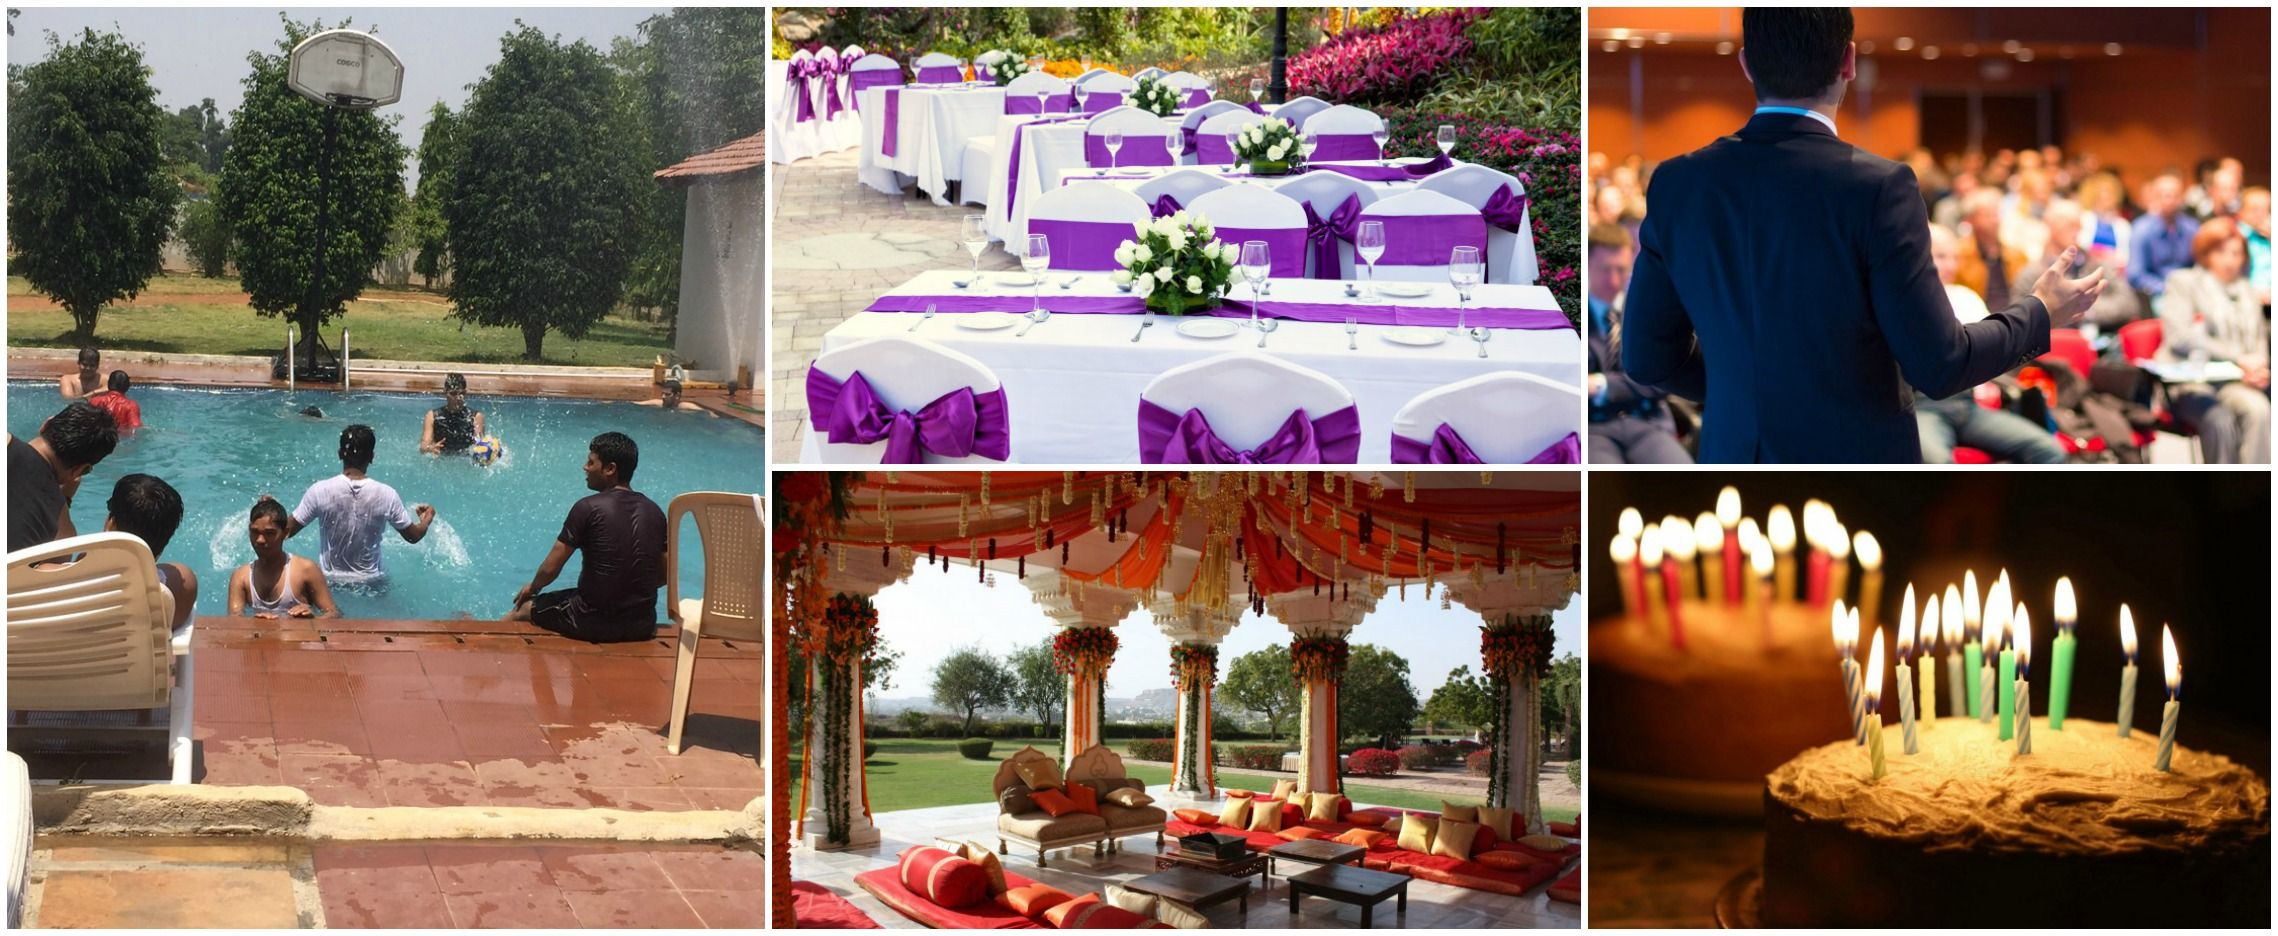 Enjoy your events at Karjatvilla farmhouse in Karjat.